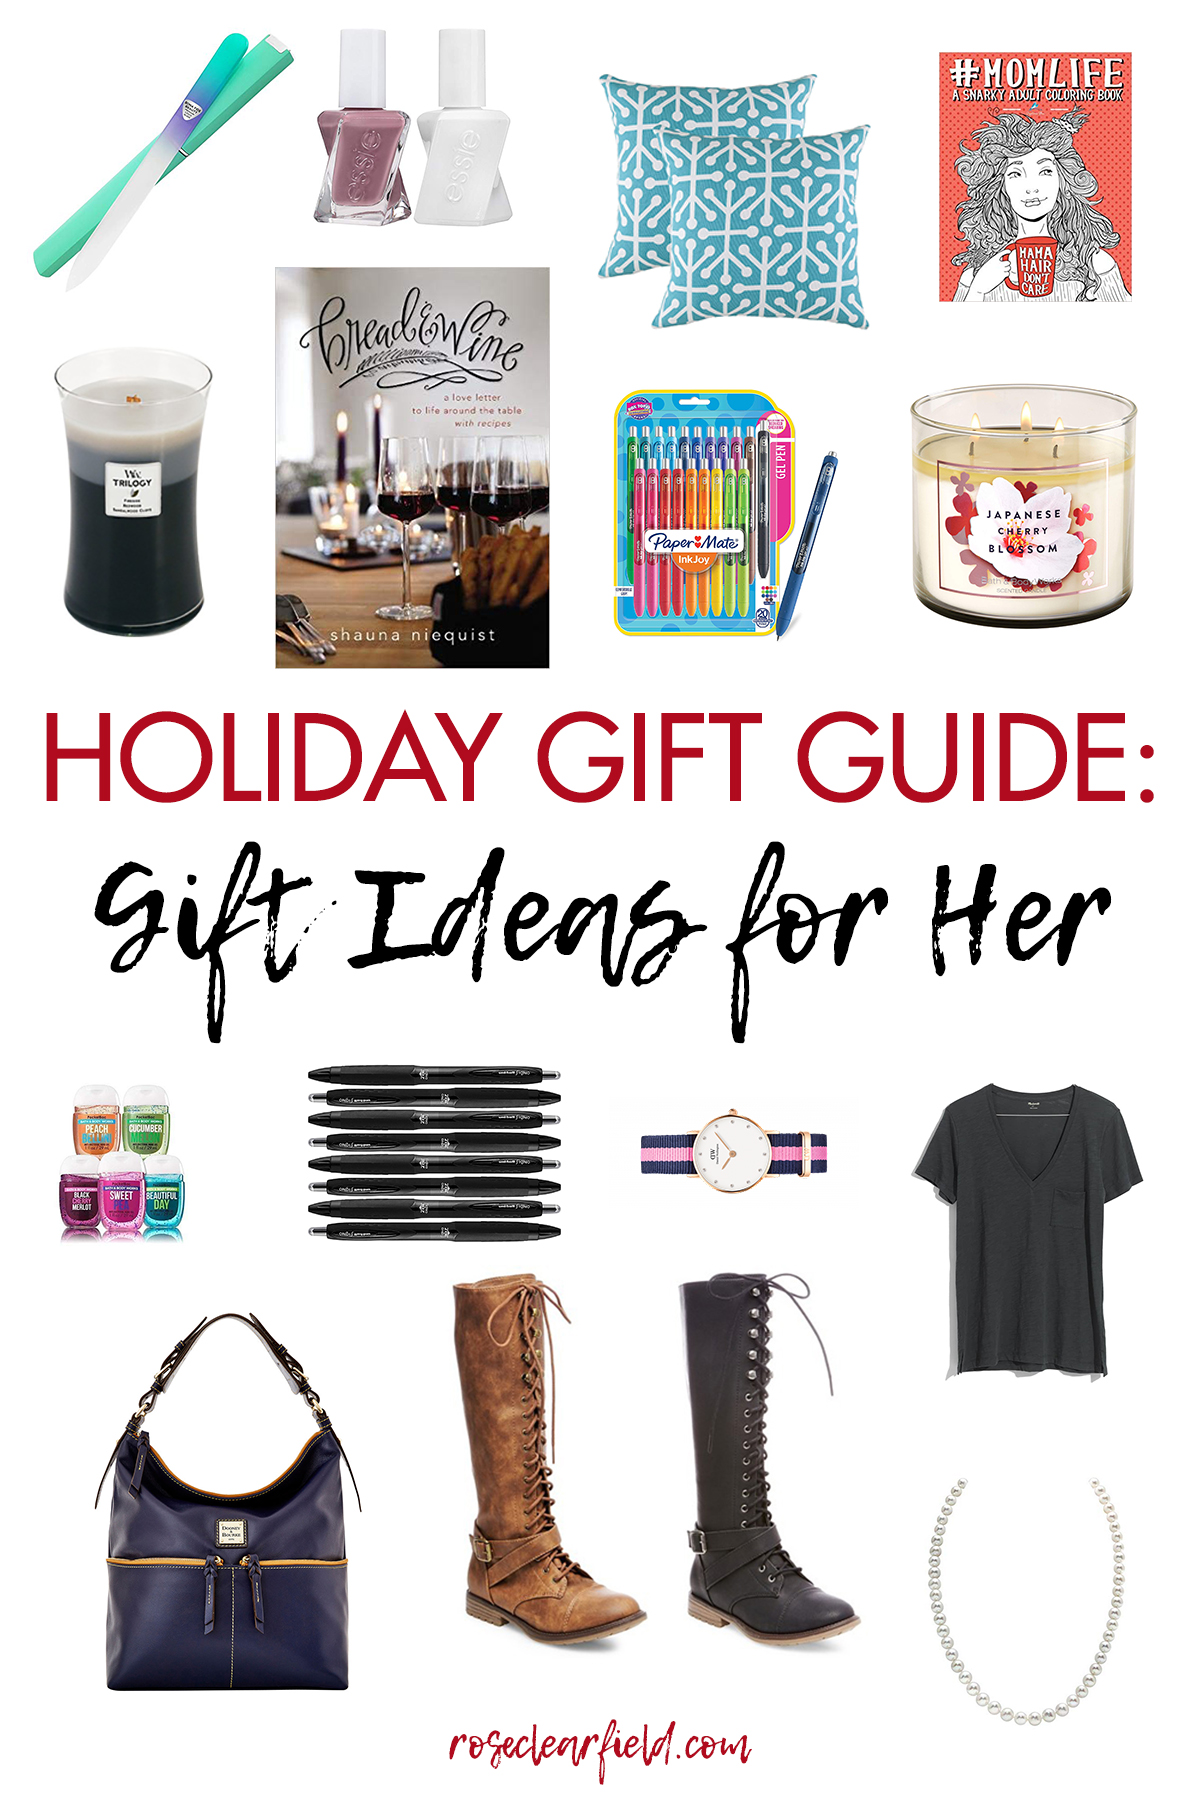 Holiday Gift Guide: Gift Ideas for Her